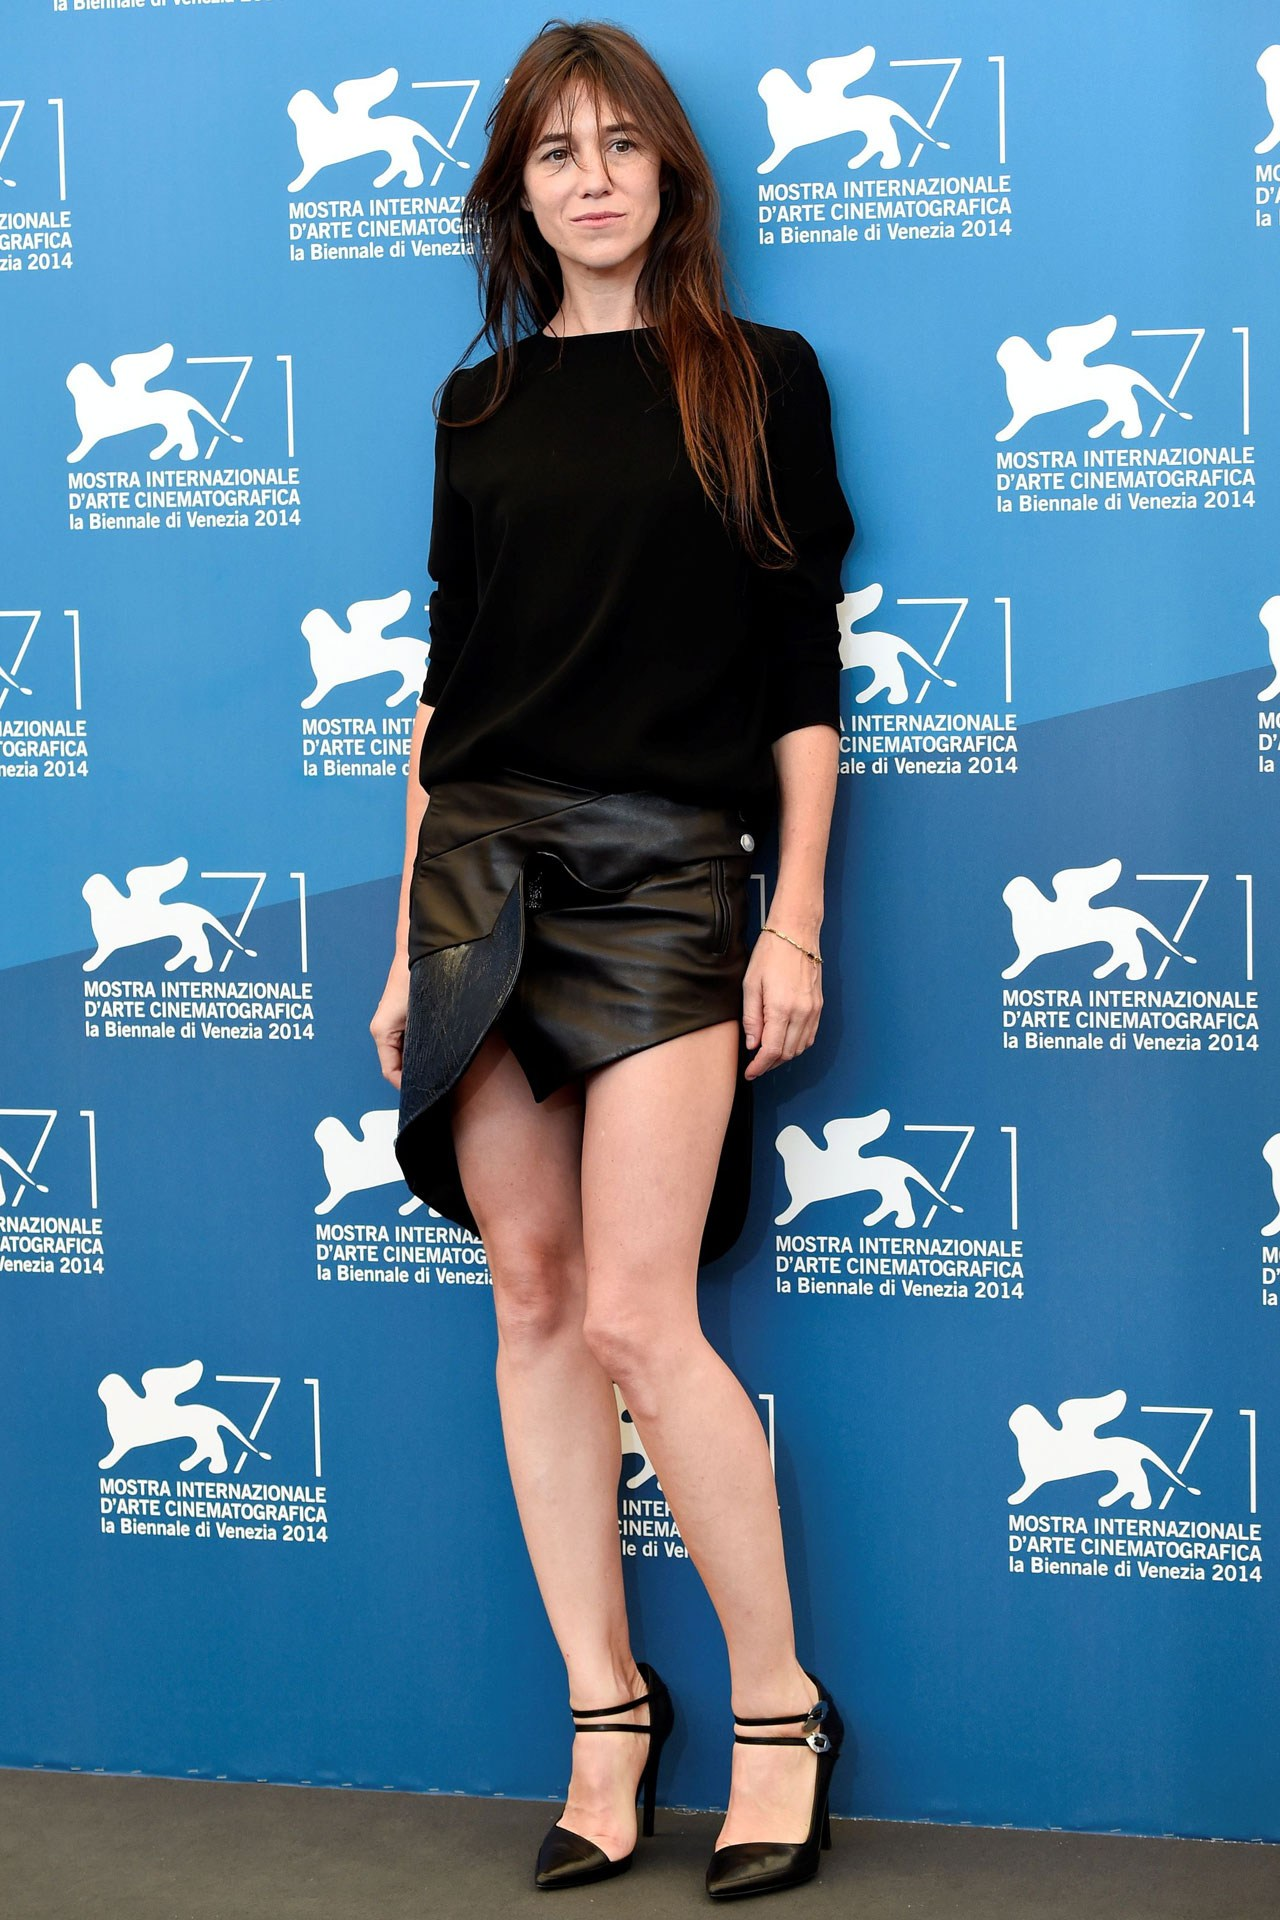 tumblr nb7xrfzq2X1s30zs3o1 1280 Charlotte Gainsbourg wears  Anthony Vaccarello at The  '3 Coeurs' Venice Film Festival Photocall